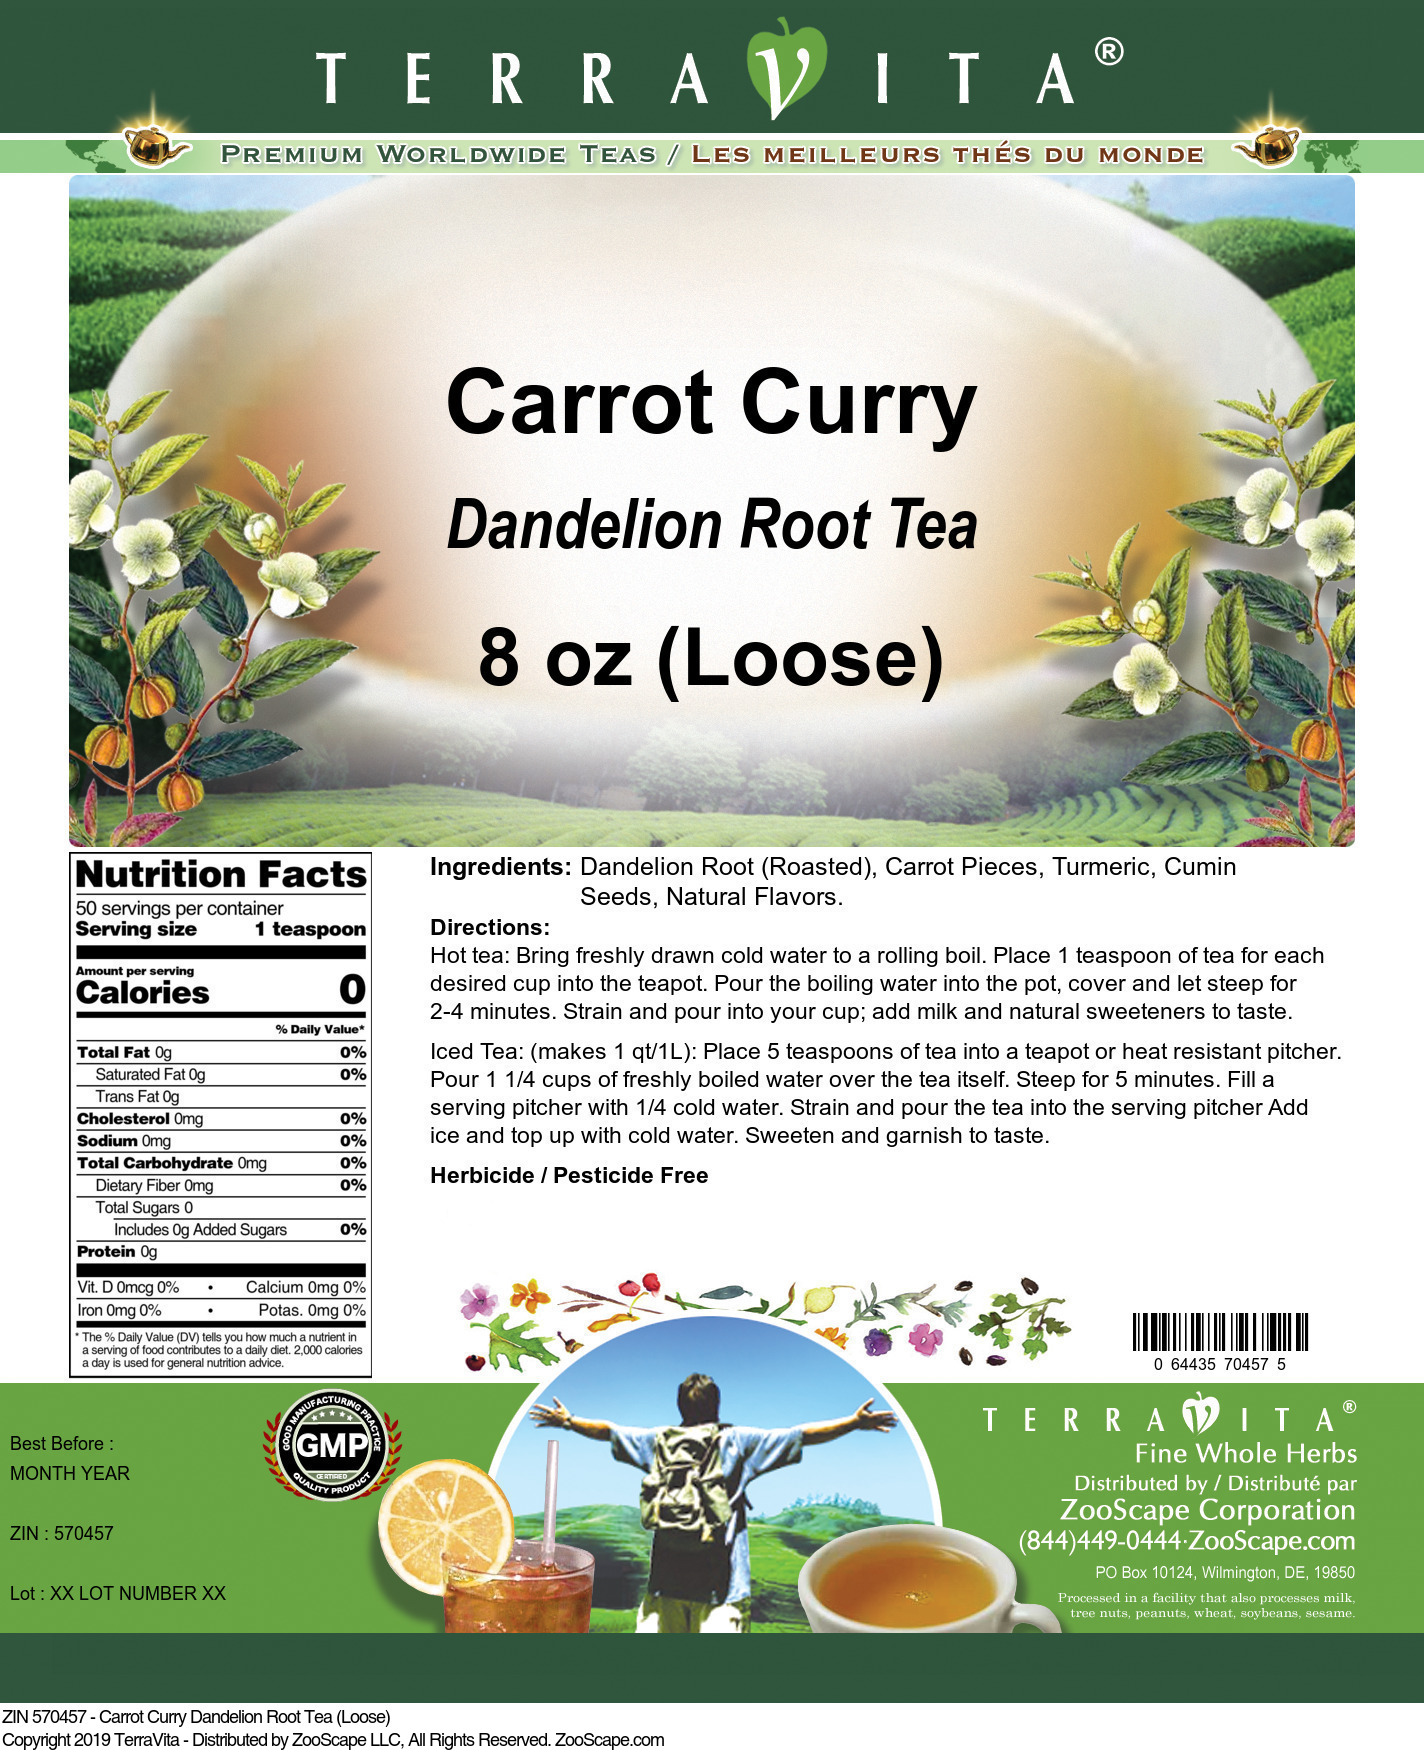 Carrot Curry Dandelion Root